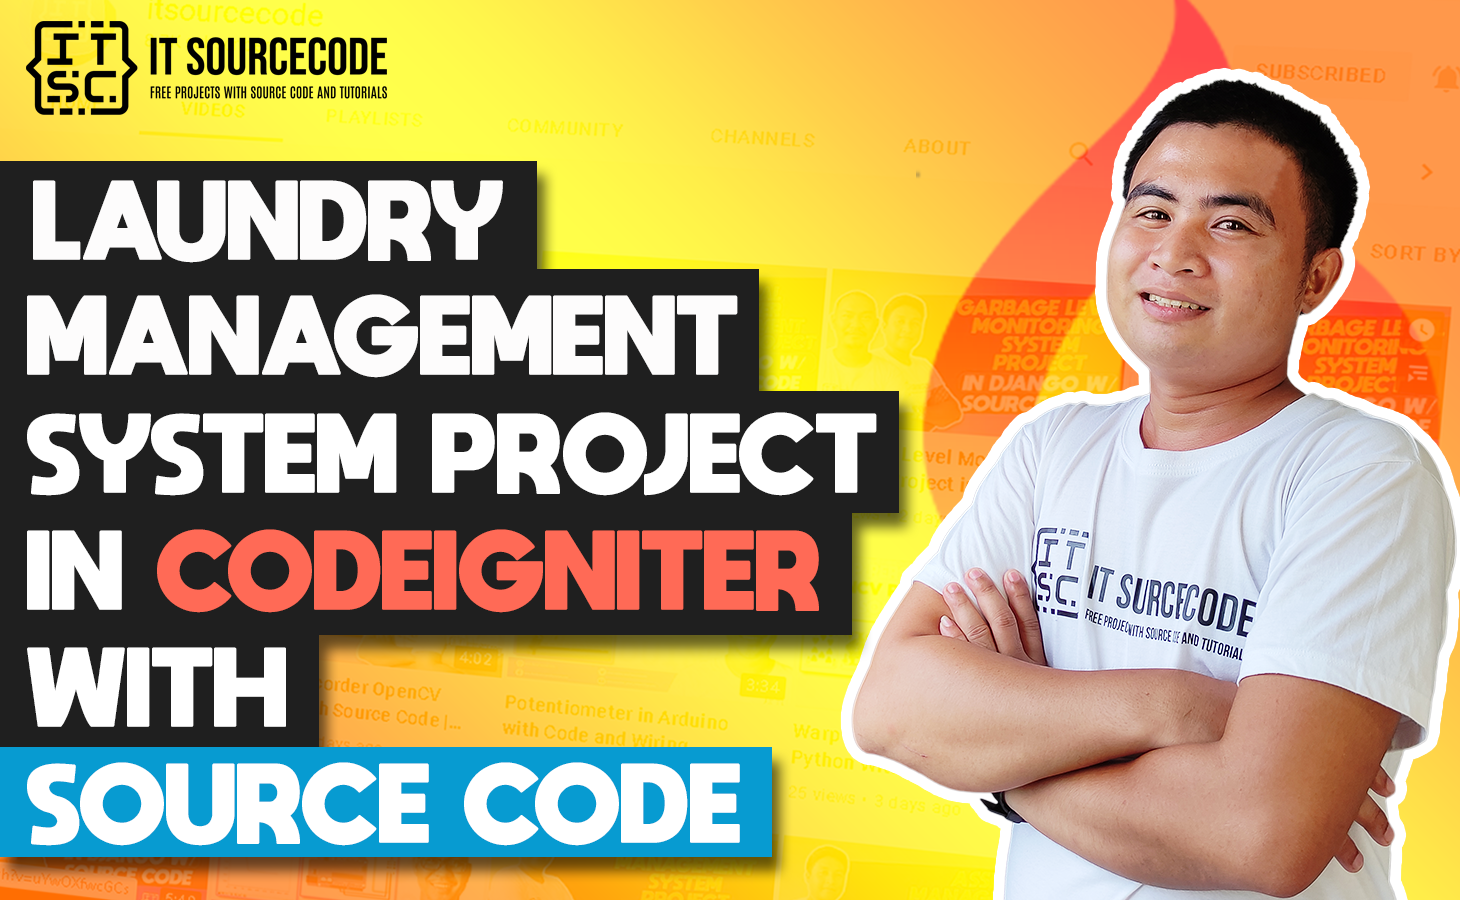 Laundry Management System Project In CodeIgniter With Source Code